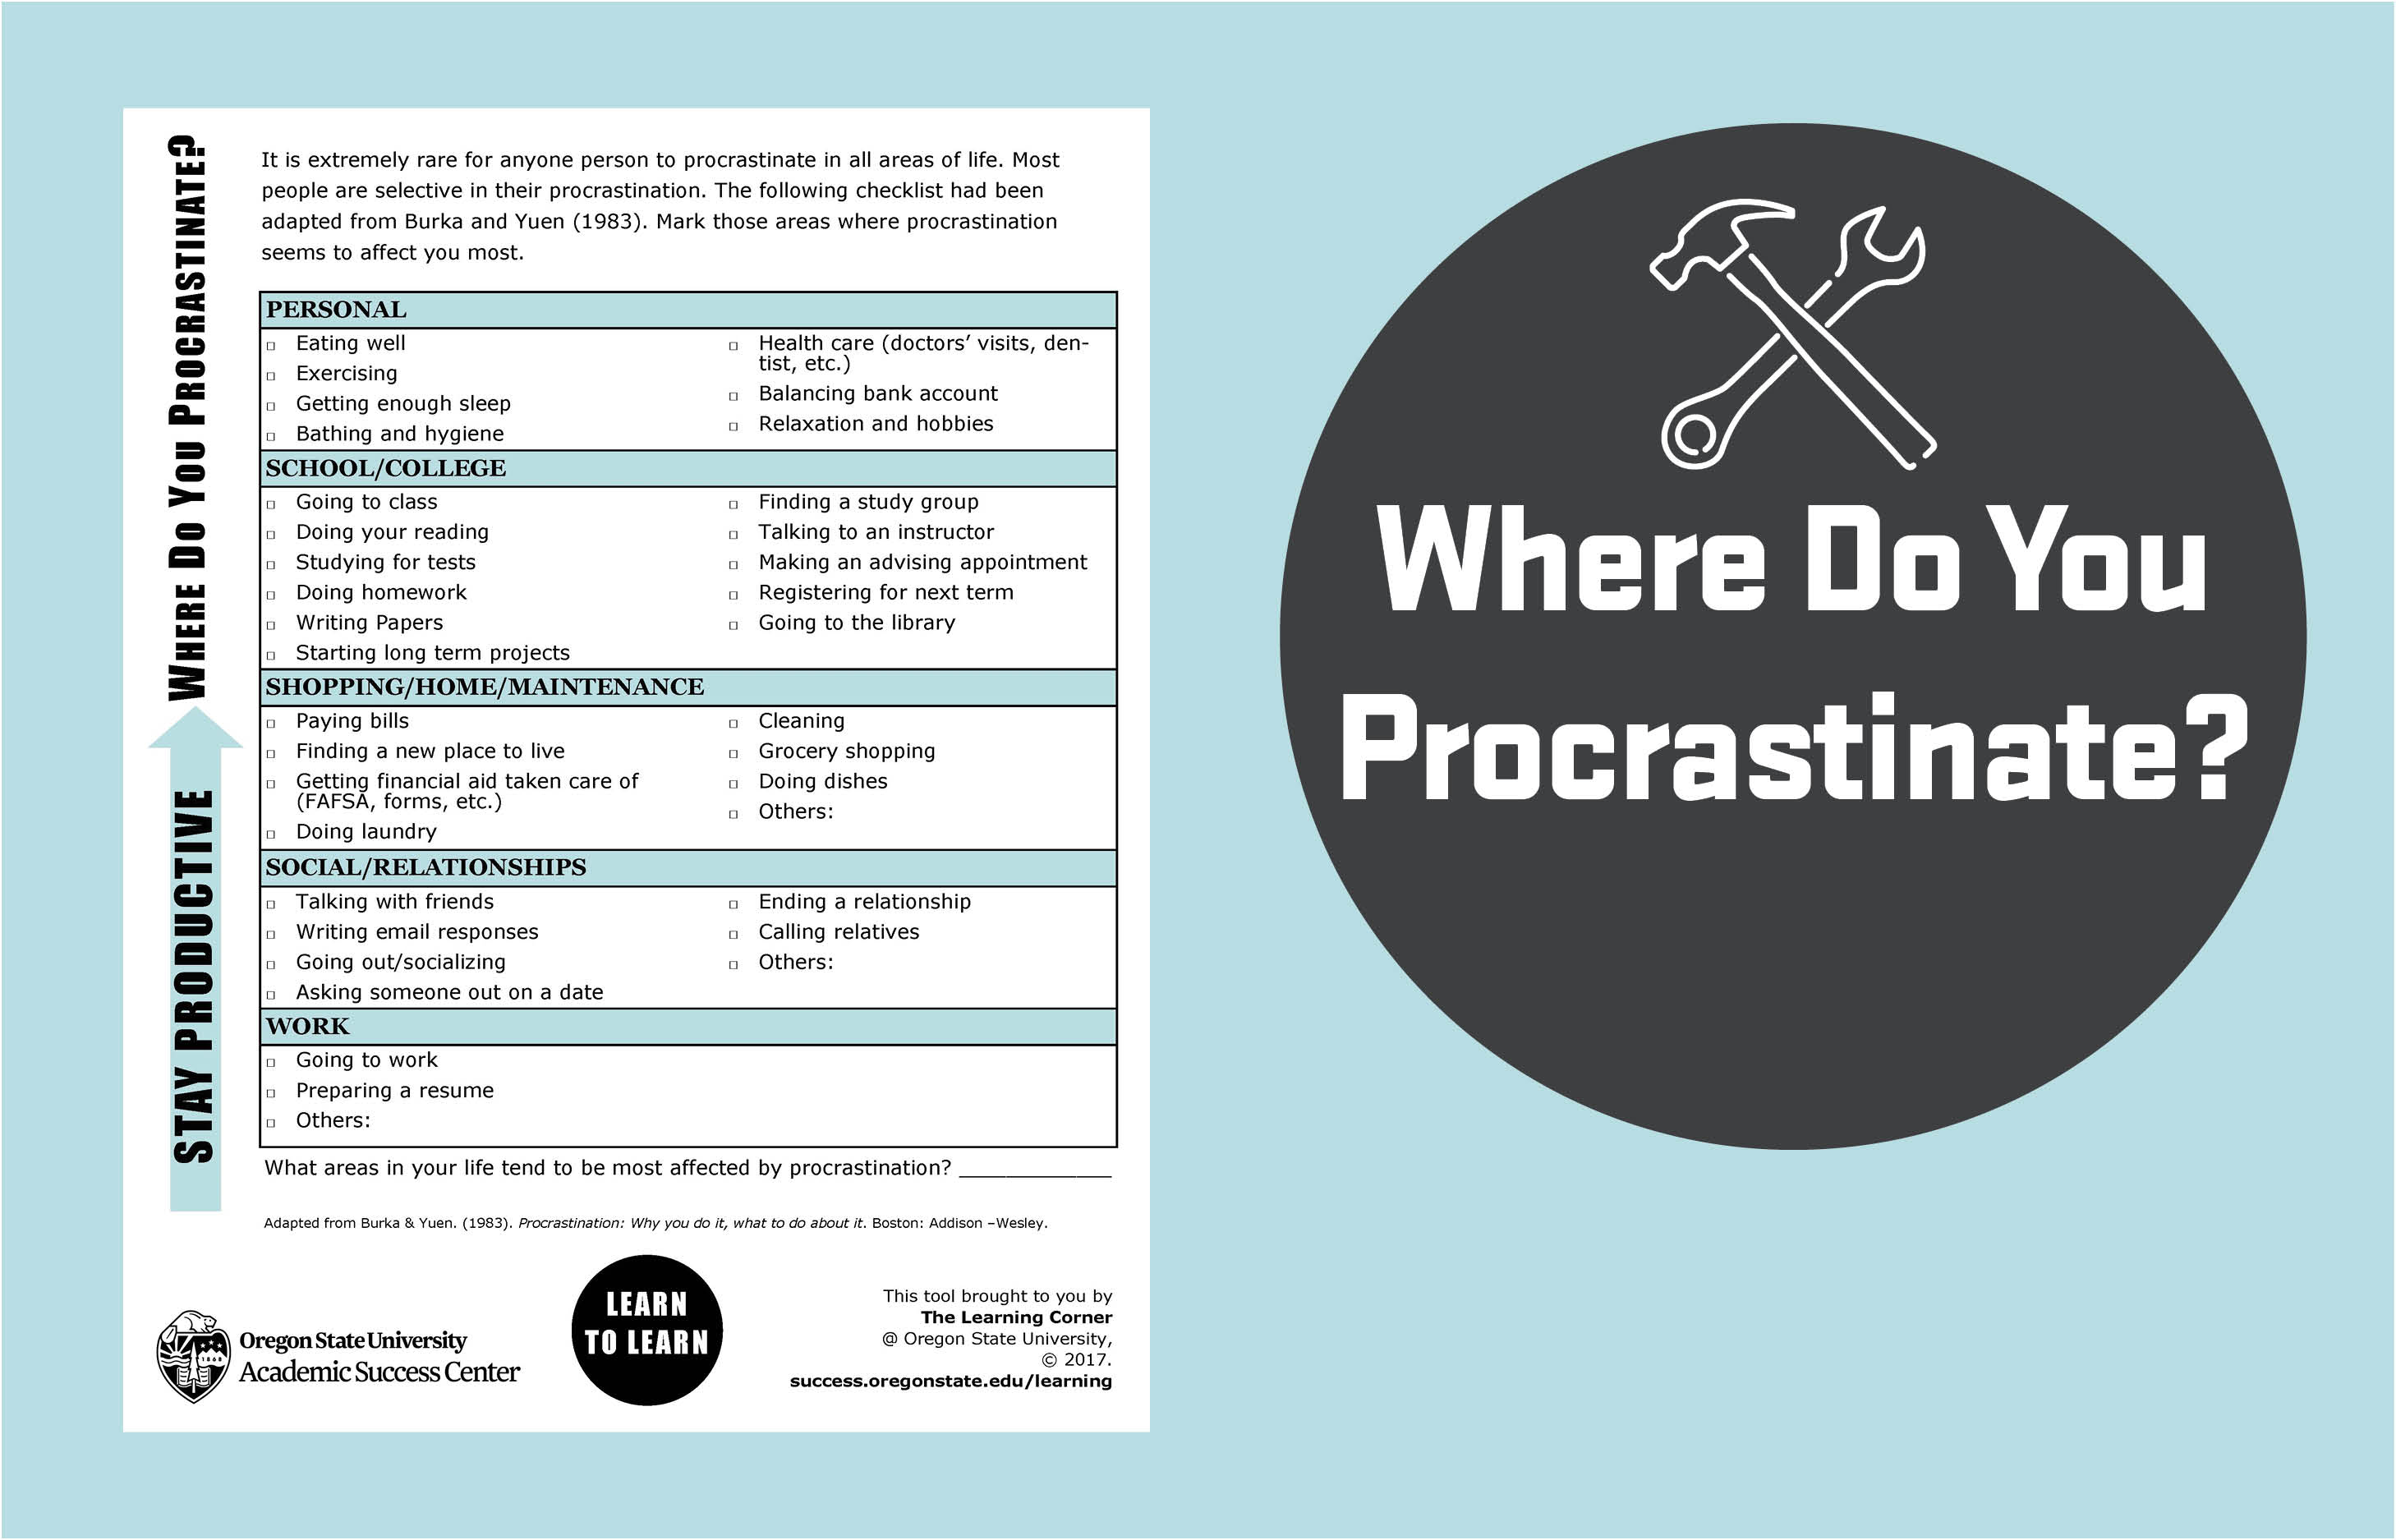 Where do you procrastinate?